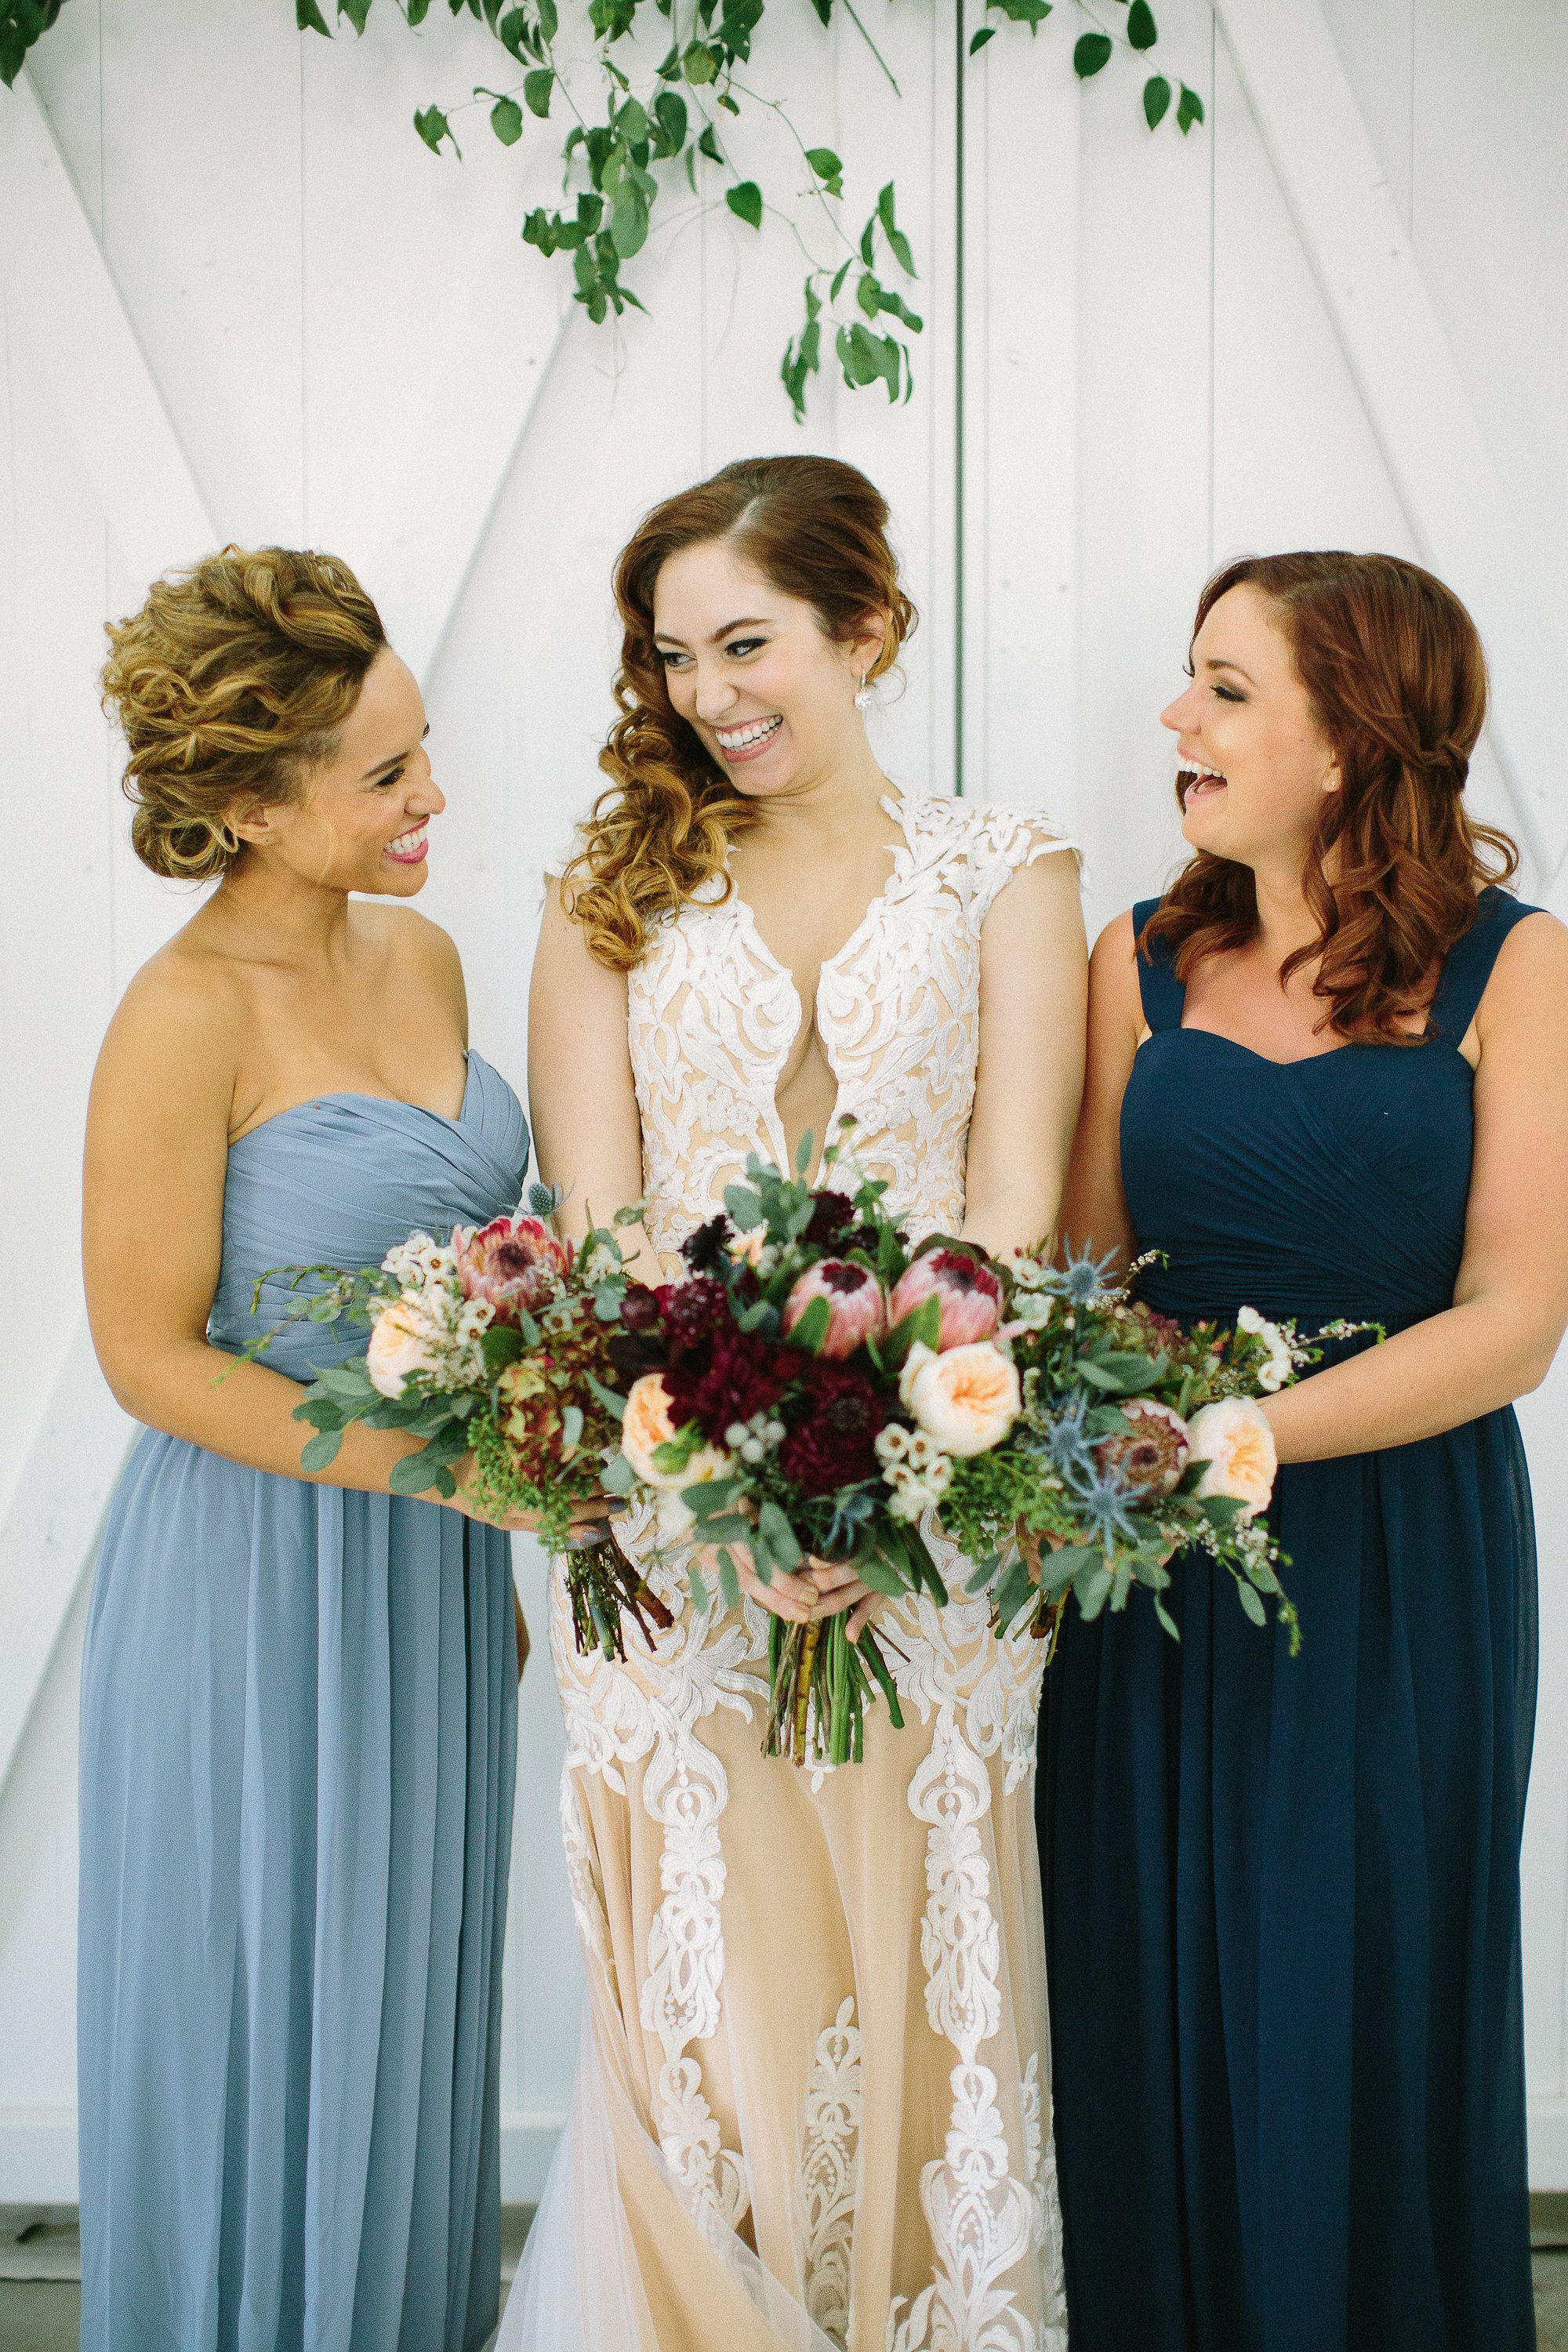 Beautiful bridesmaid dresses from vow to be chic rent for 99 or beautiful bridesmaid dresses from vow to be chic rent for 99 or less ombrellifo Gallery